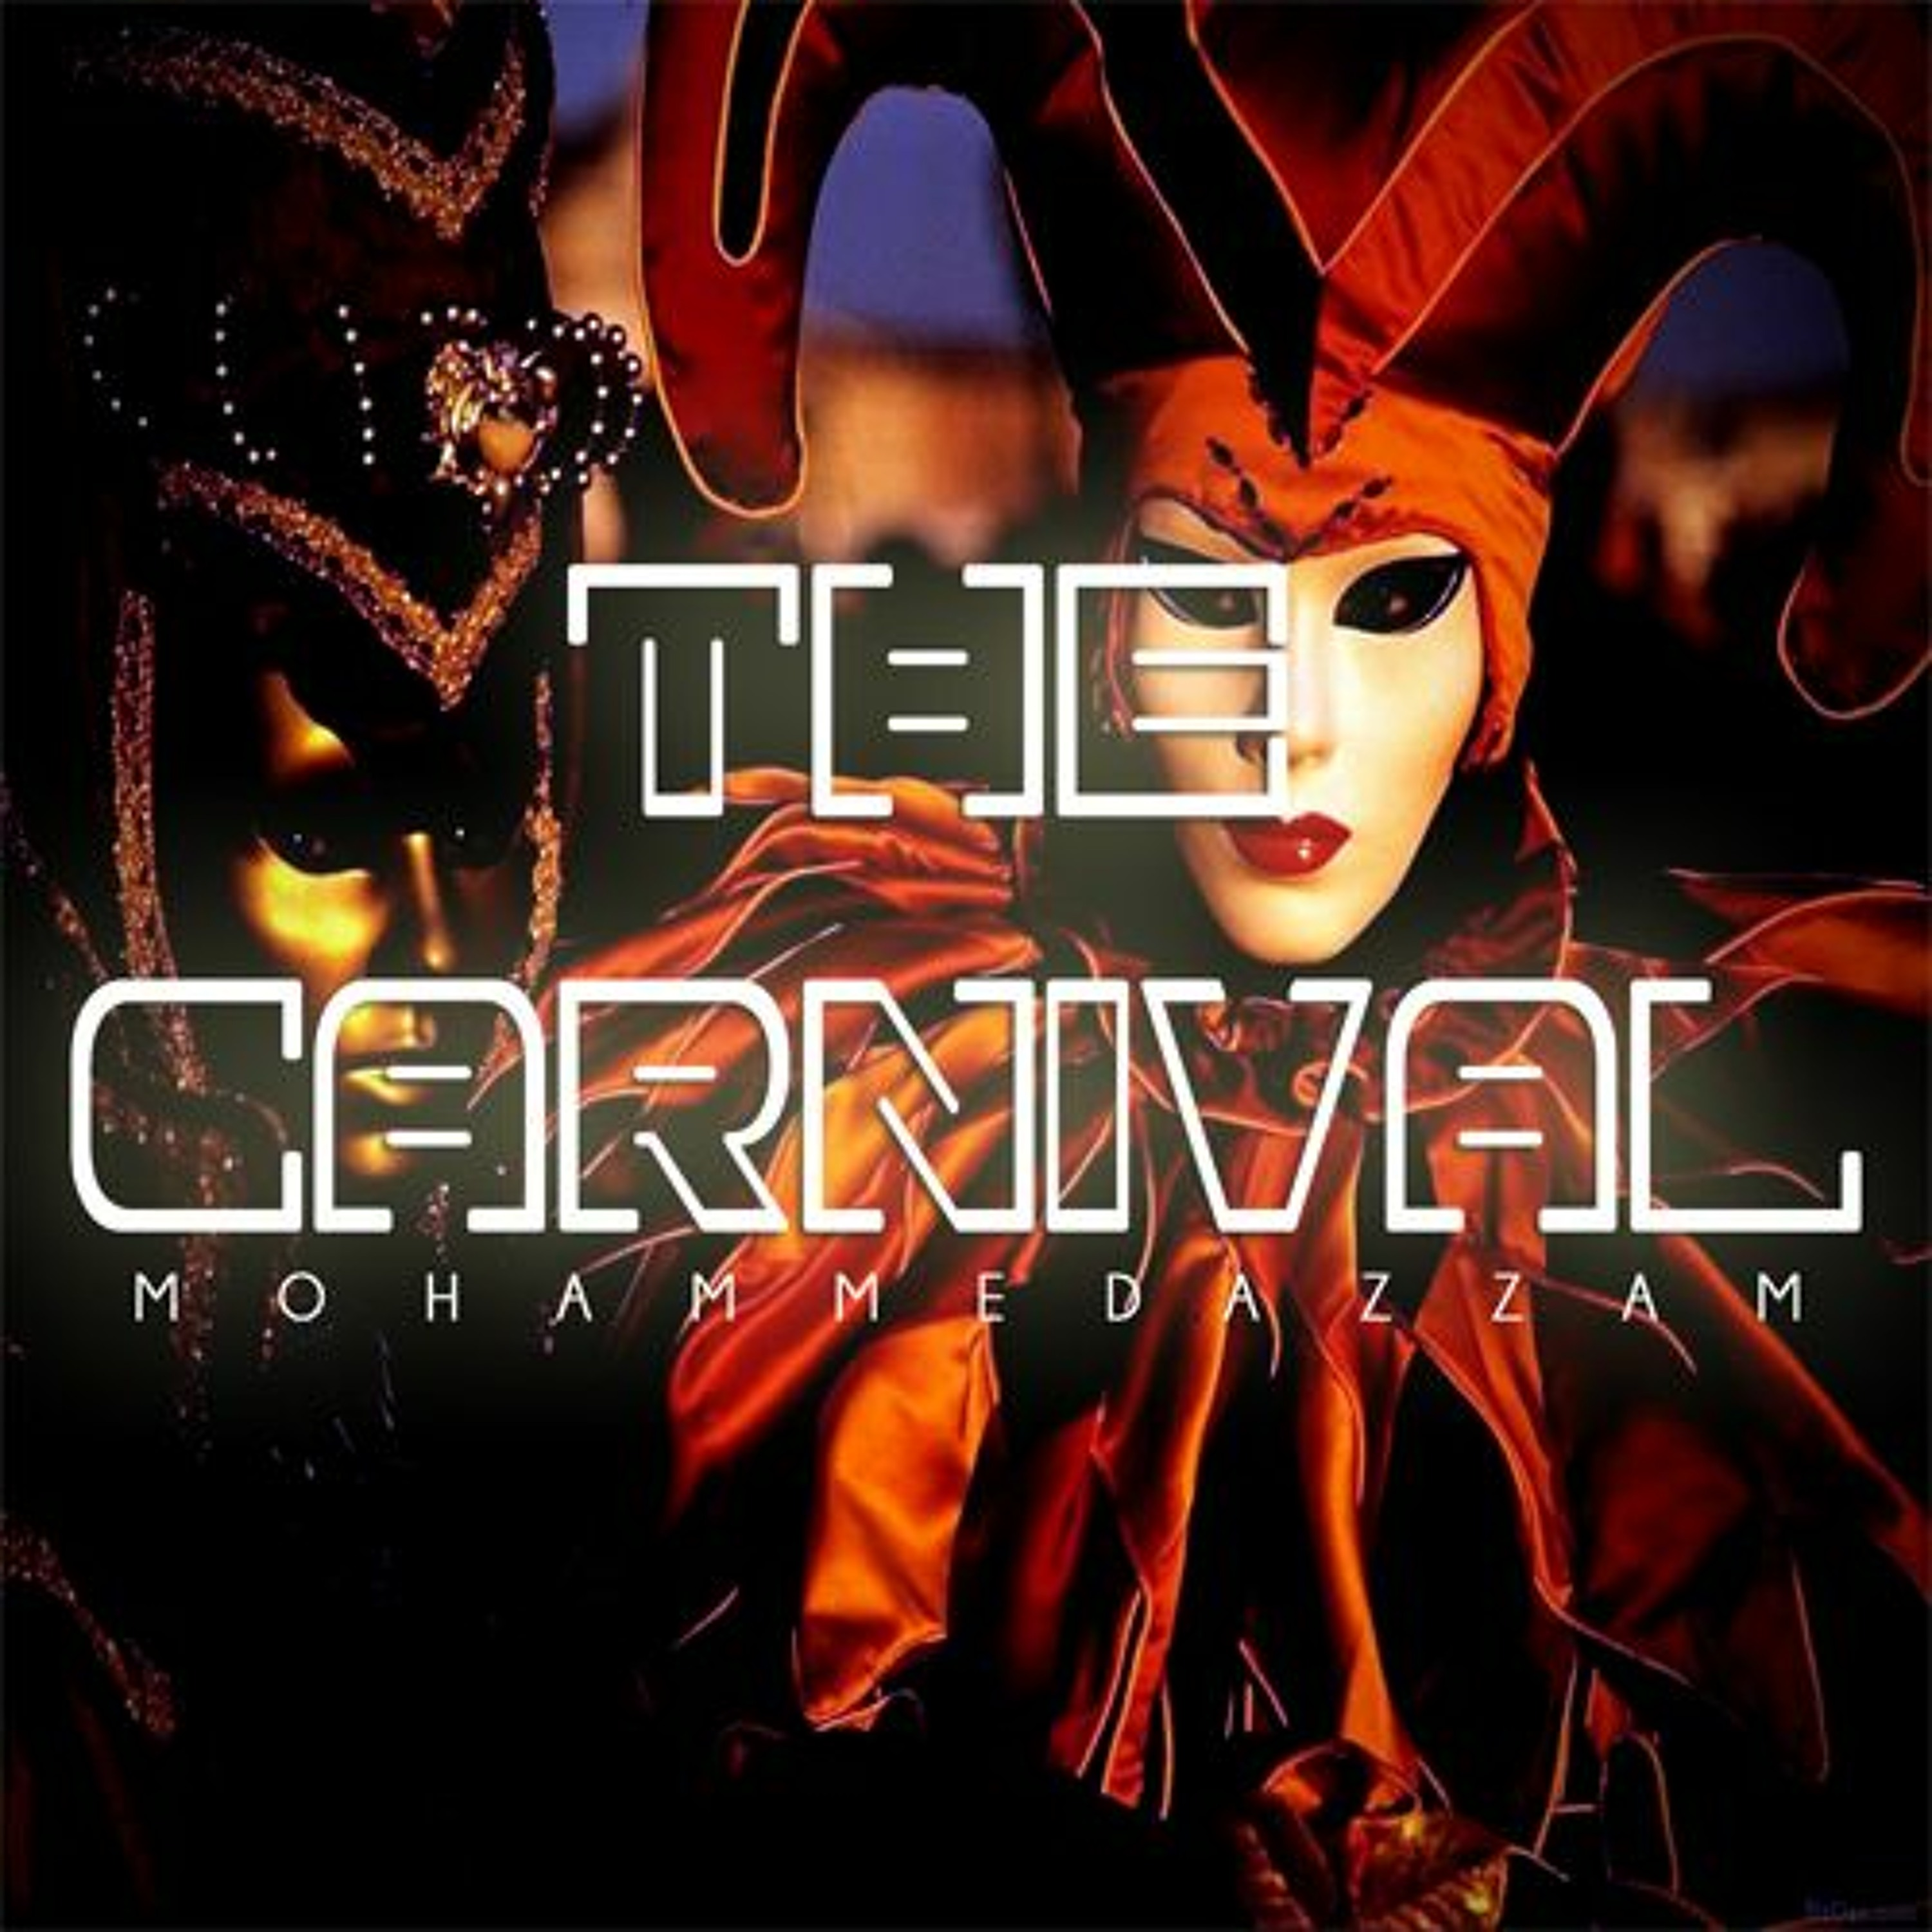 The Carnival (Original Mix)